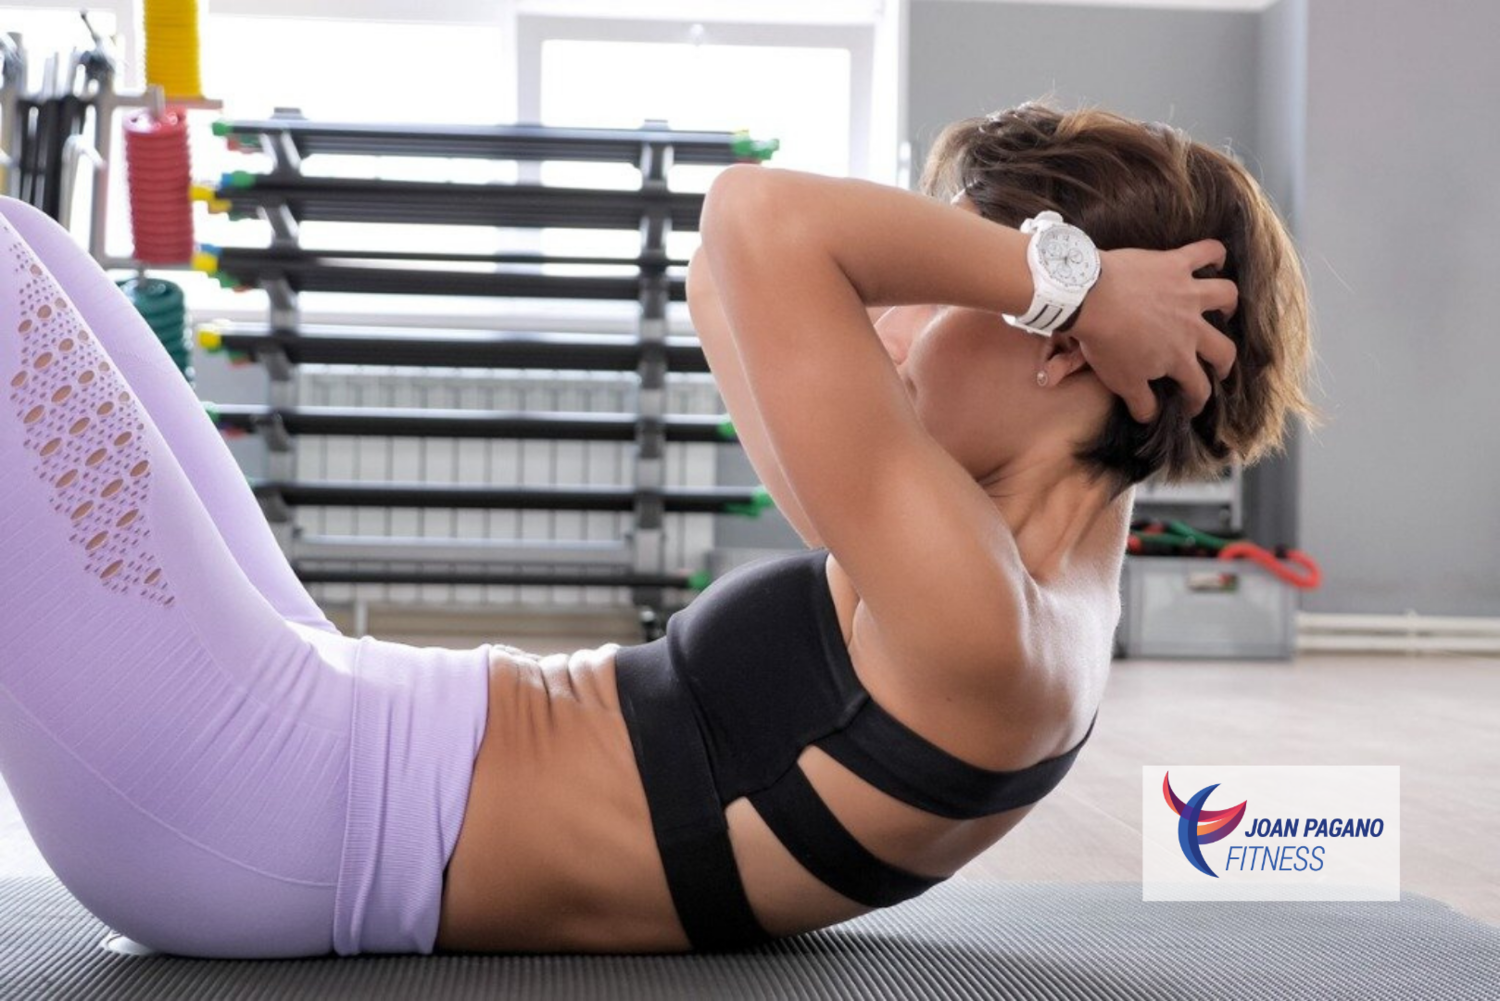 #4 Osteoporosis exercises to avoid : sit-ups and crunches